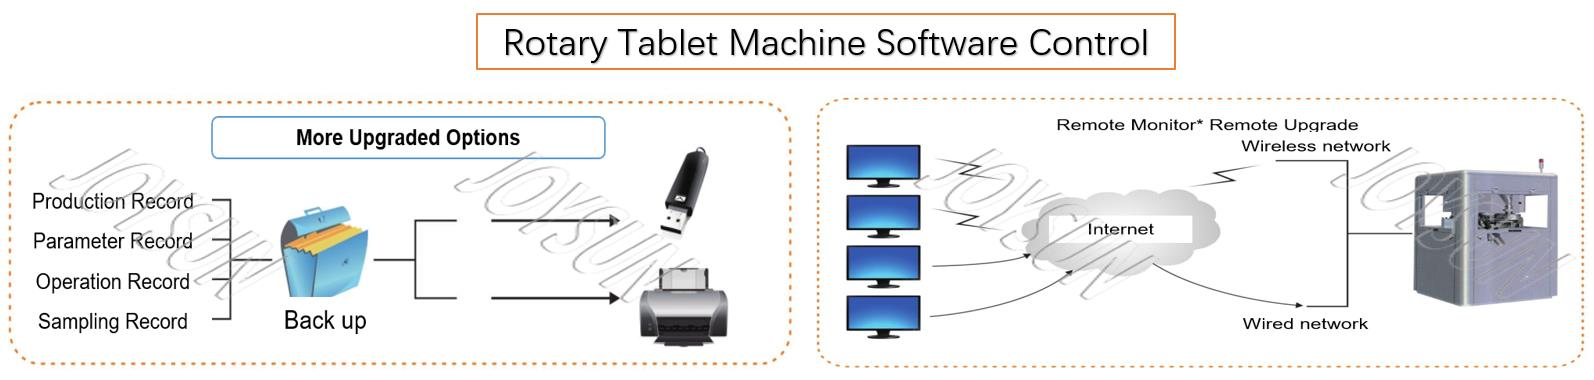 rotary-tablet-machine-software-control